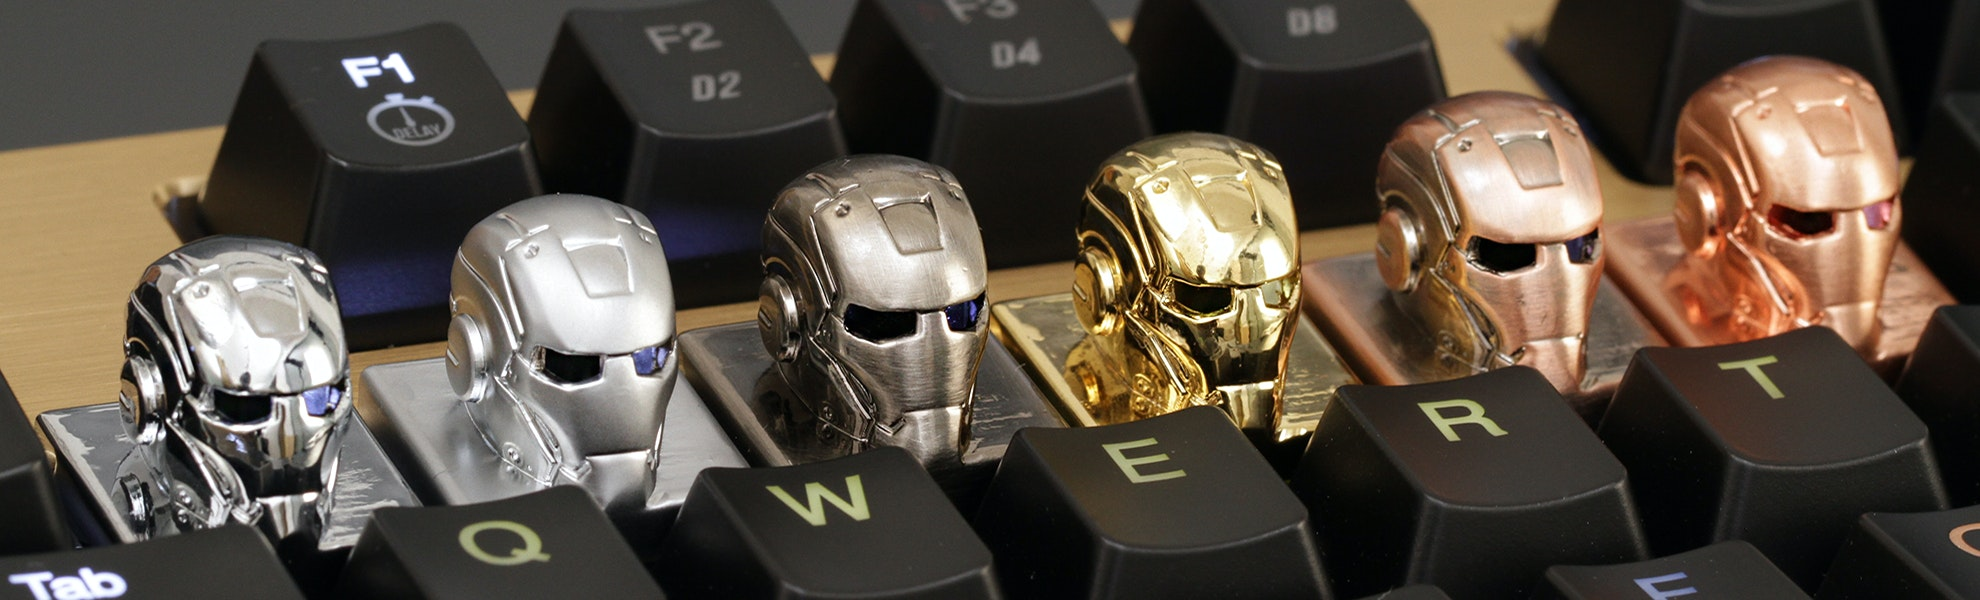 GeekKeys Metal Ironman Cherry MX Keycap